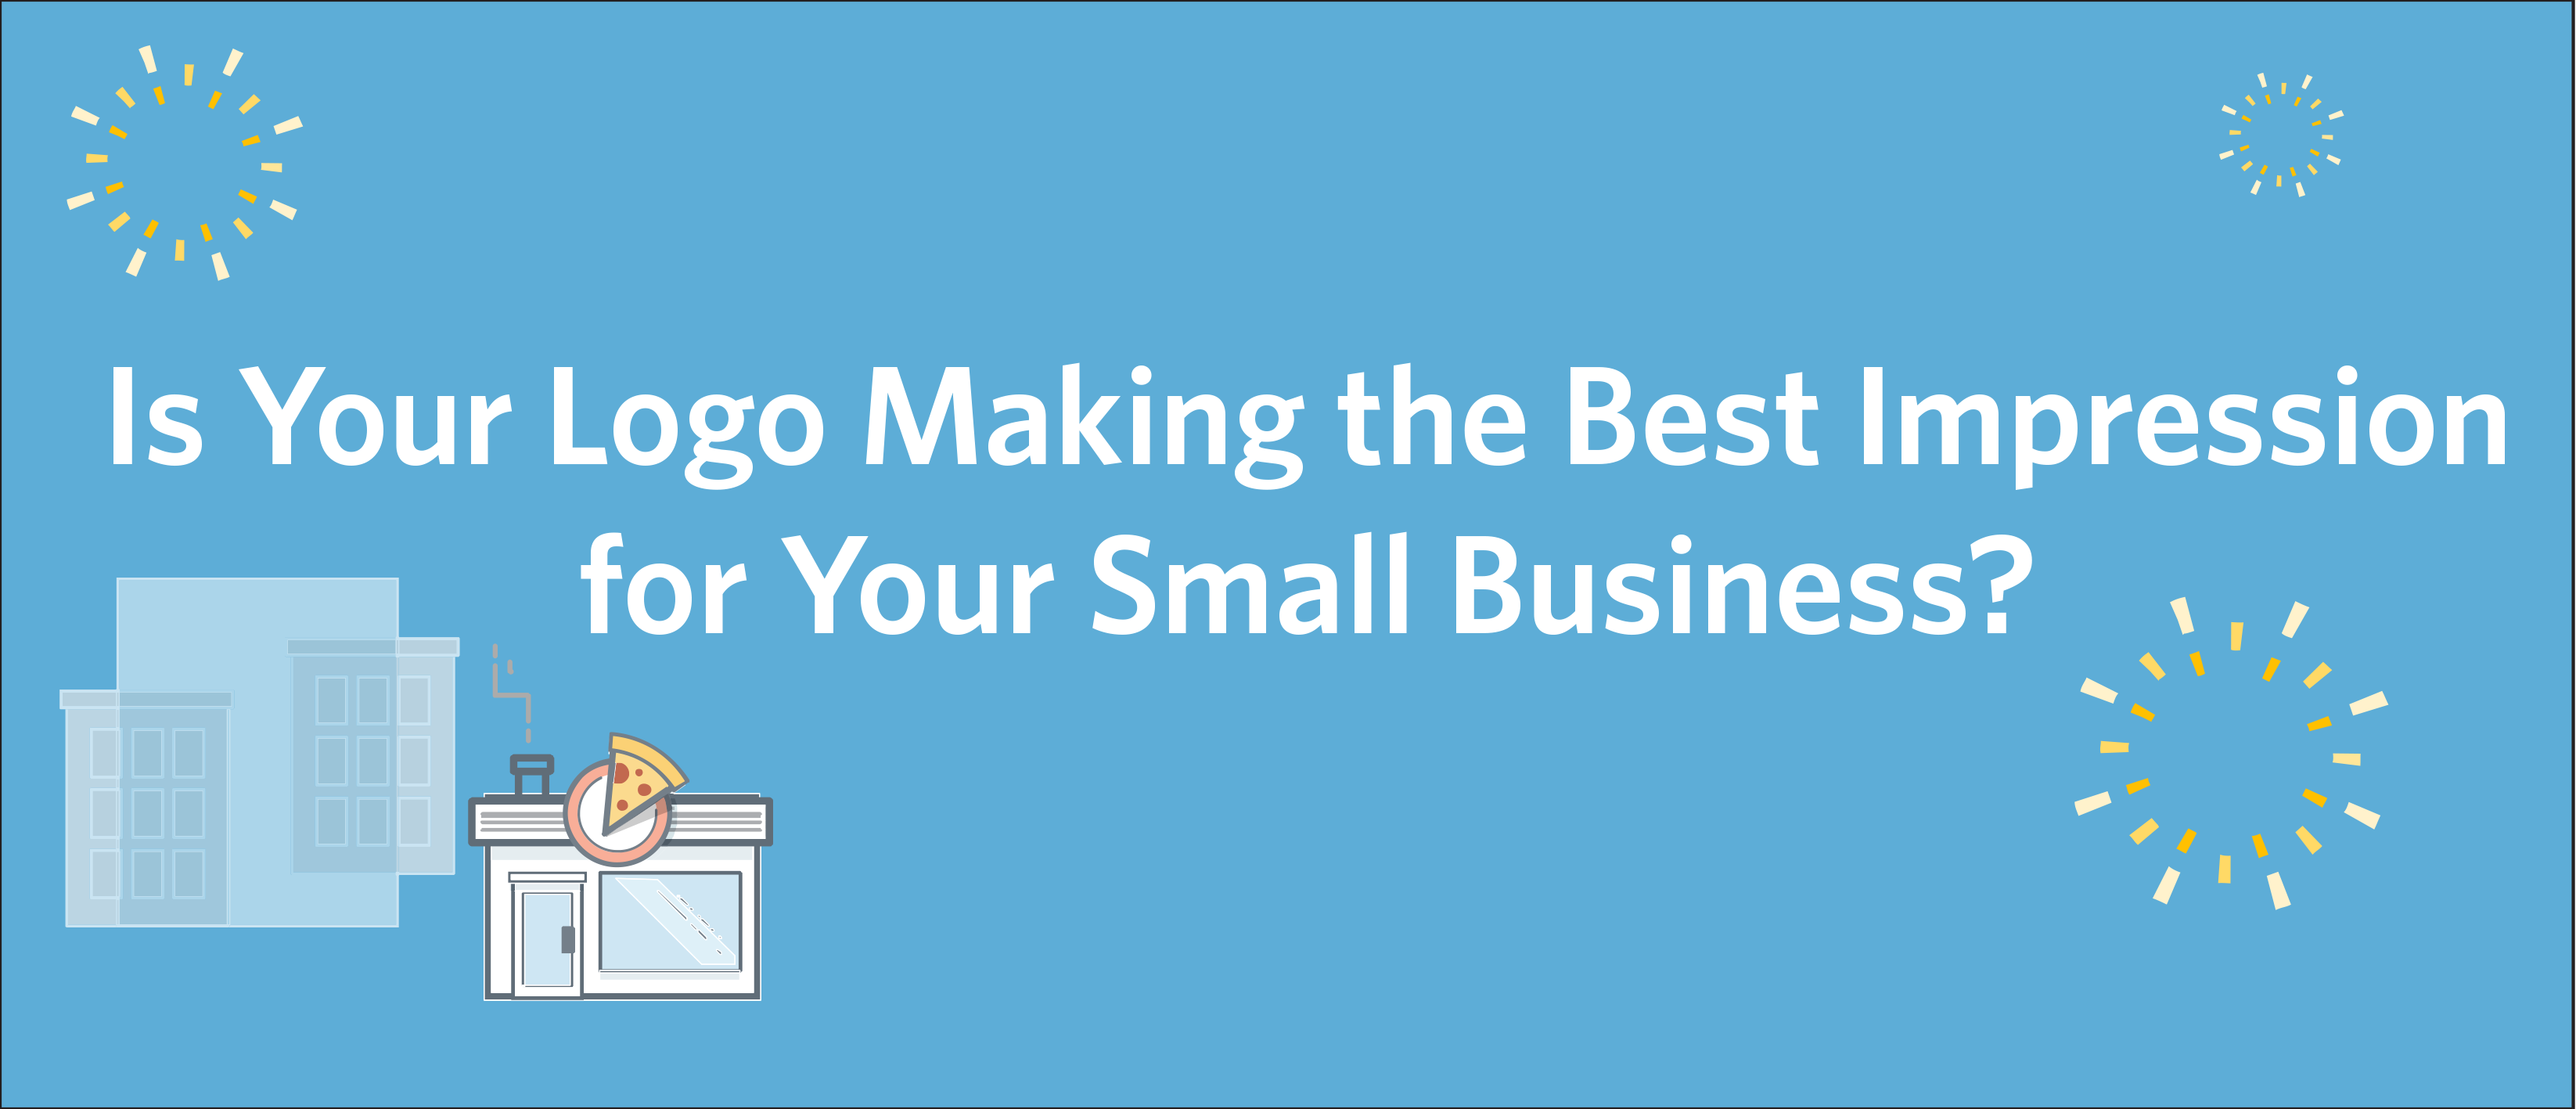 Is Your Logo Making the Best Impression for Your Small Business?